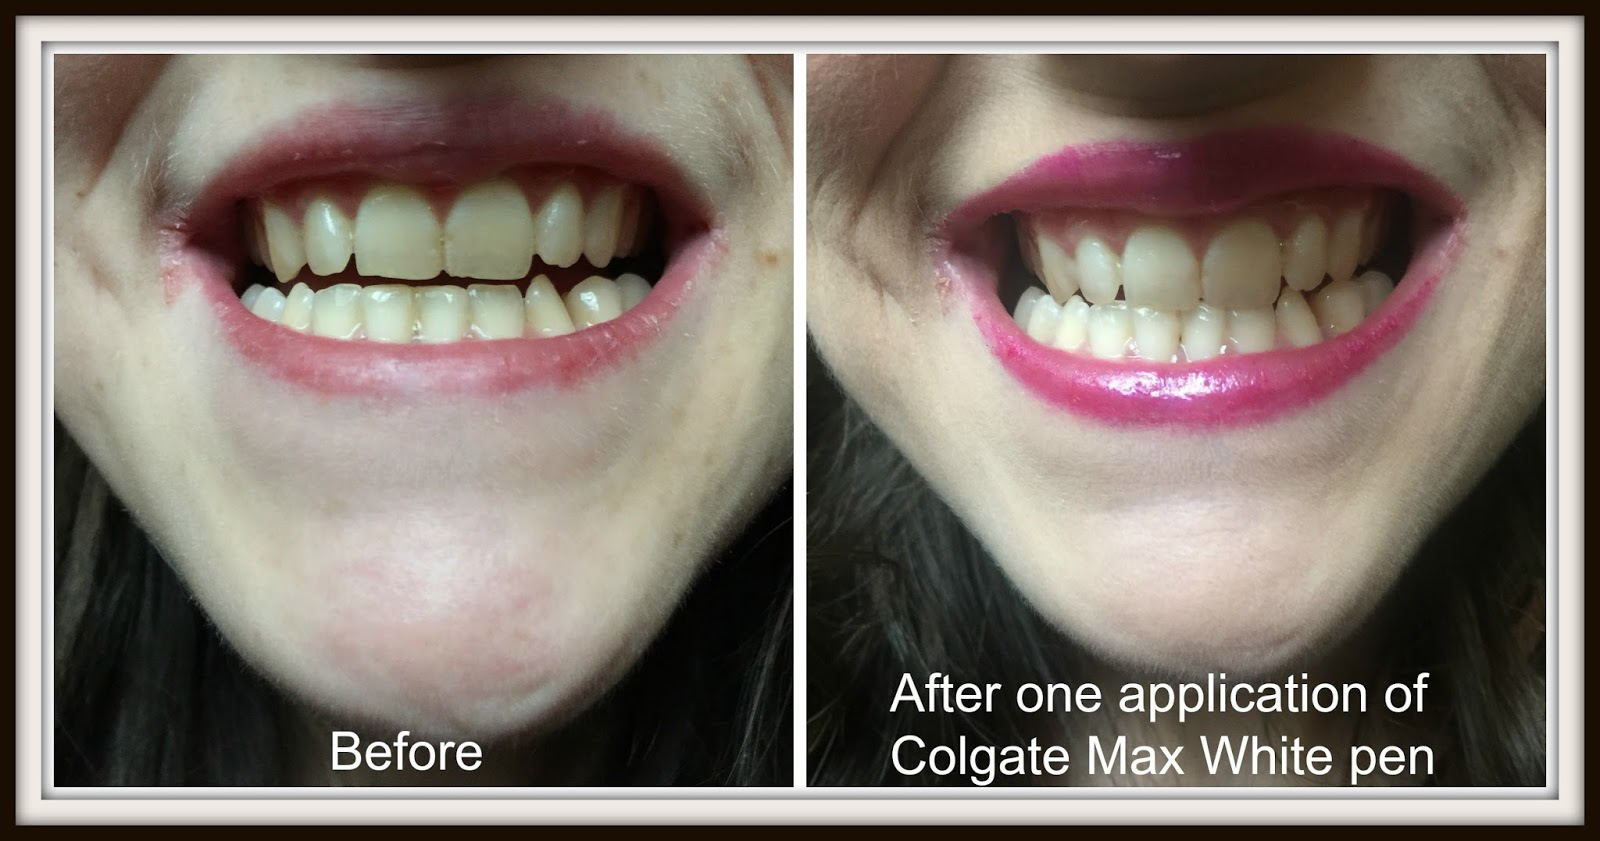 Get Your Smile Up To 3 Shades Whiter With Colgate Max White Expert